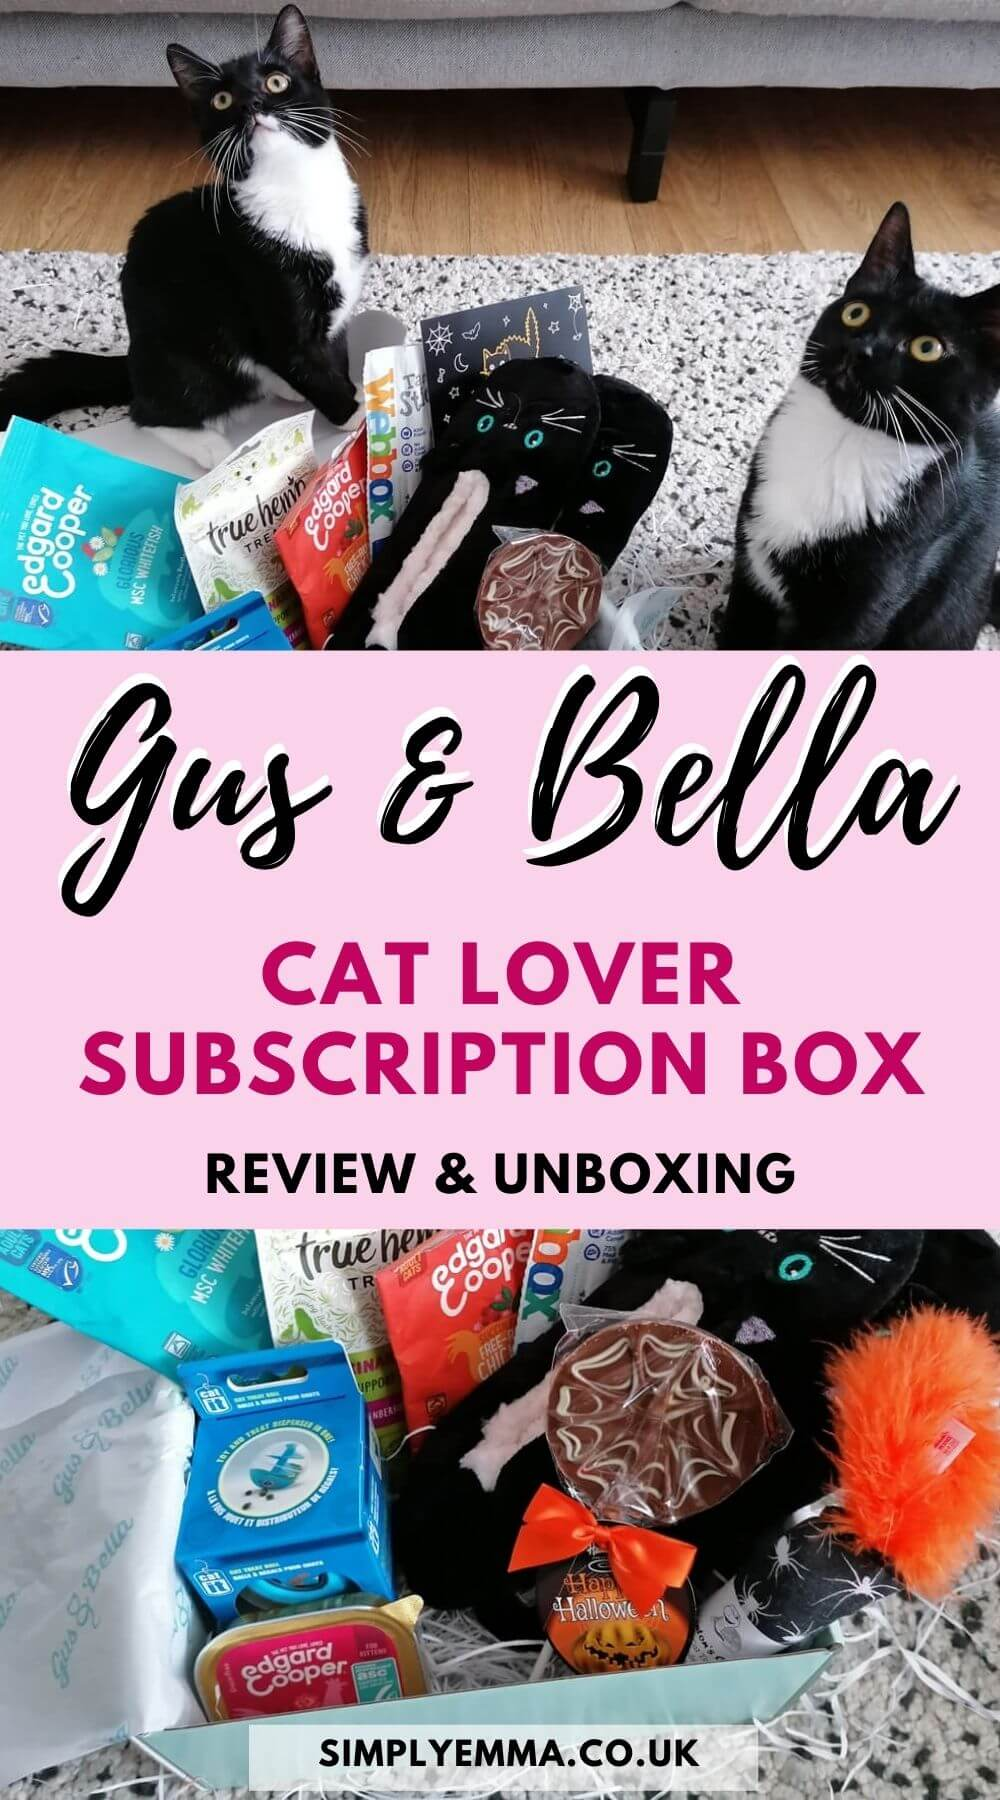 """Gus & Bella Cat Lover Subscription Box Review & Unboxing"" with an image of two black and white kittens sitting next to the Gus & Bella cat box. The second image shows all the items inside the box."